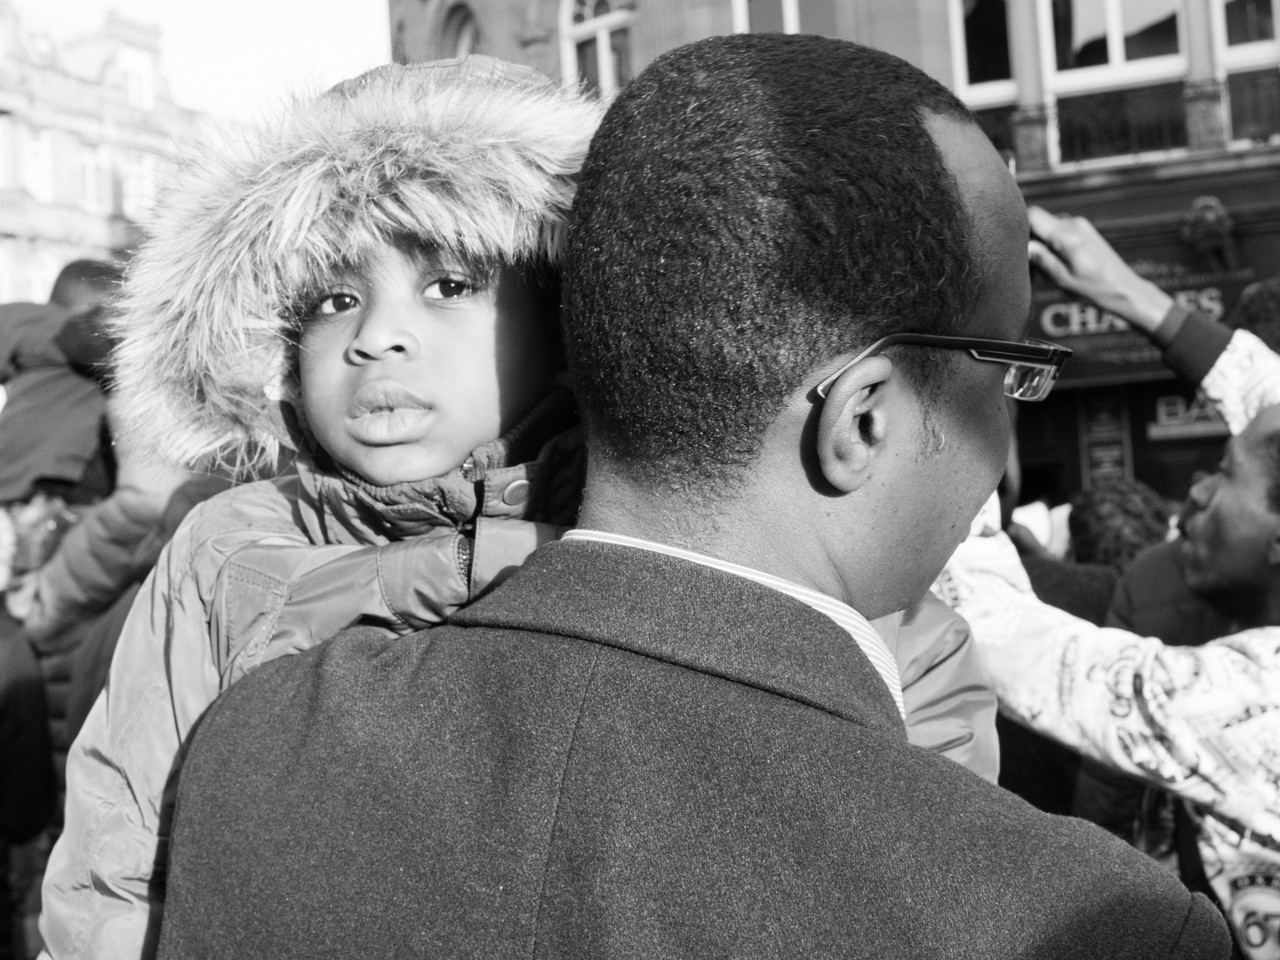 Eye contact at #sudan-revolts Protest in Newcastle Upon Tyne Street photography